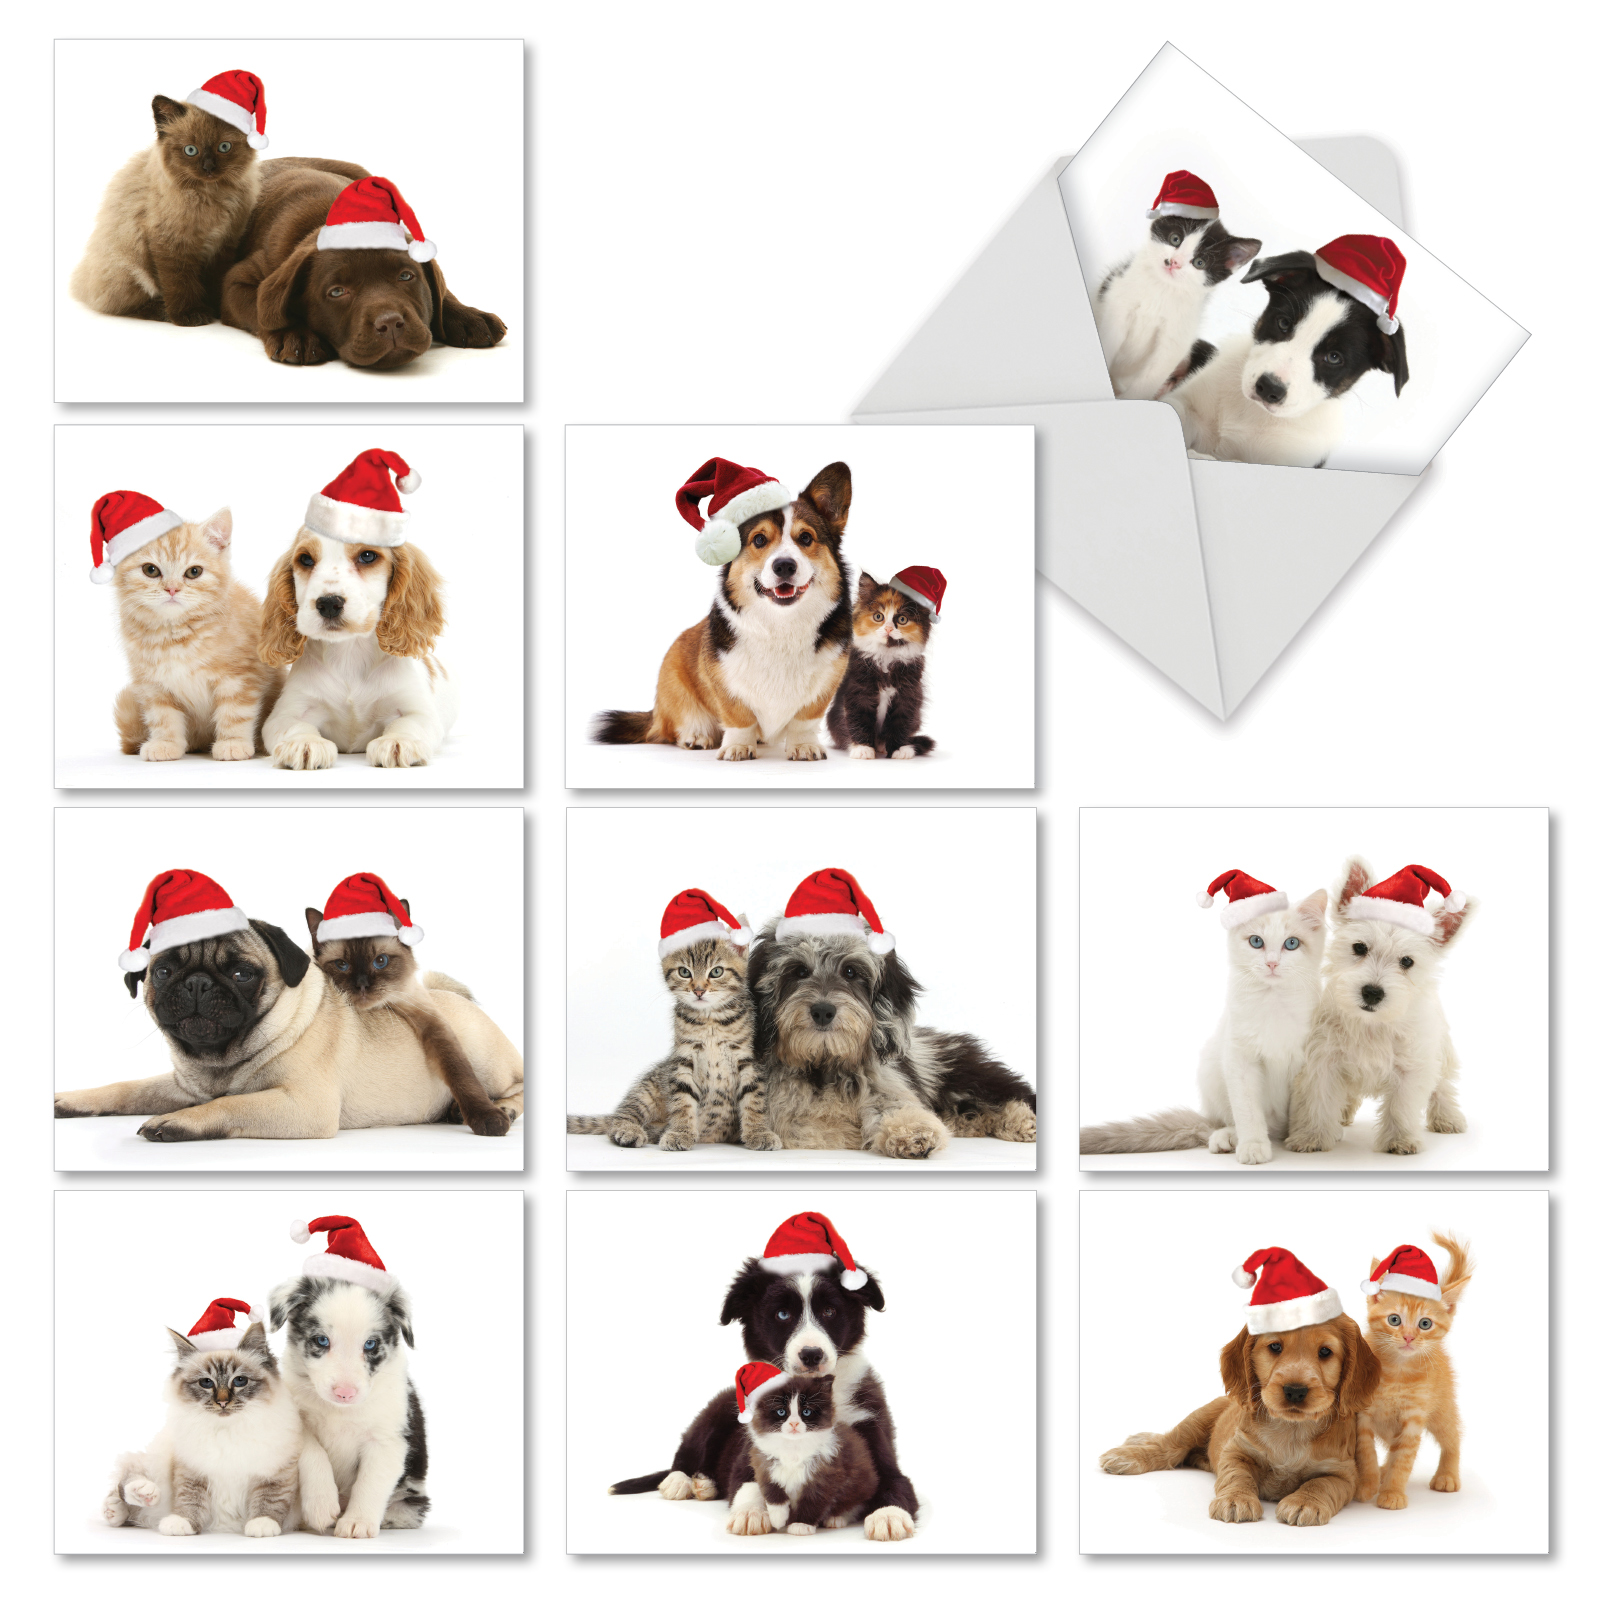 M6596XSB CHRISTMAS COPY CATS' 10 Assorted Merry Christmas Cards with Envelopes by The Best Card Company